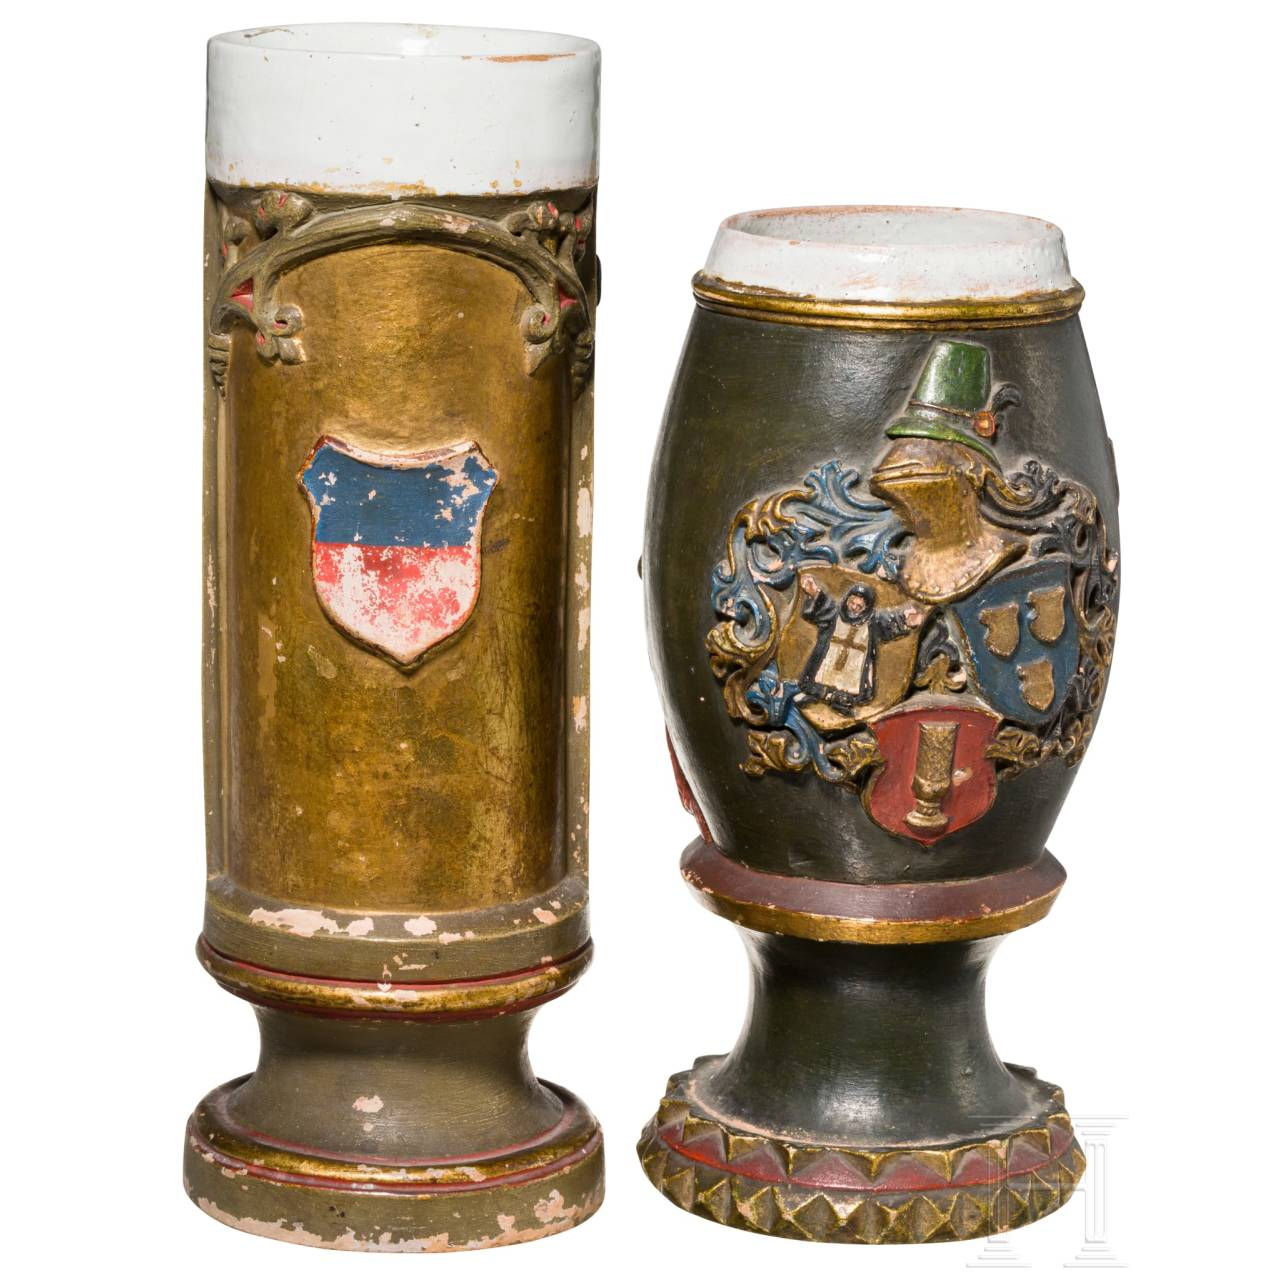 Two German historicism jugs, late 19th century